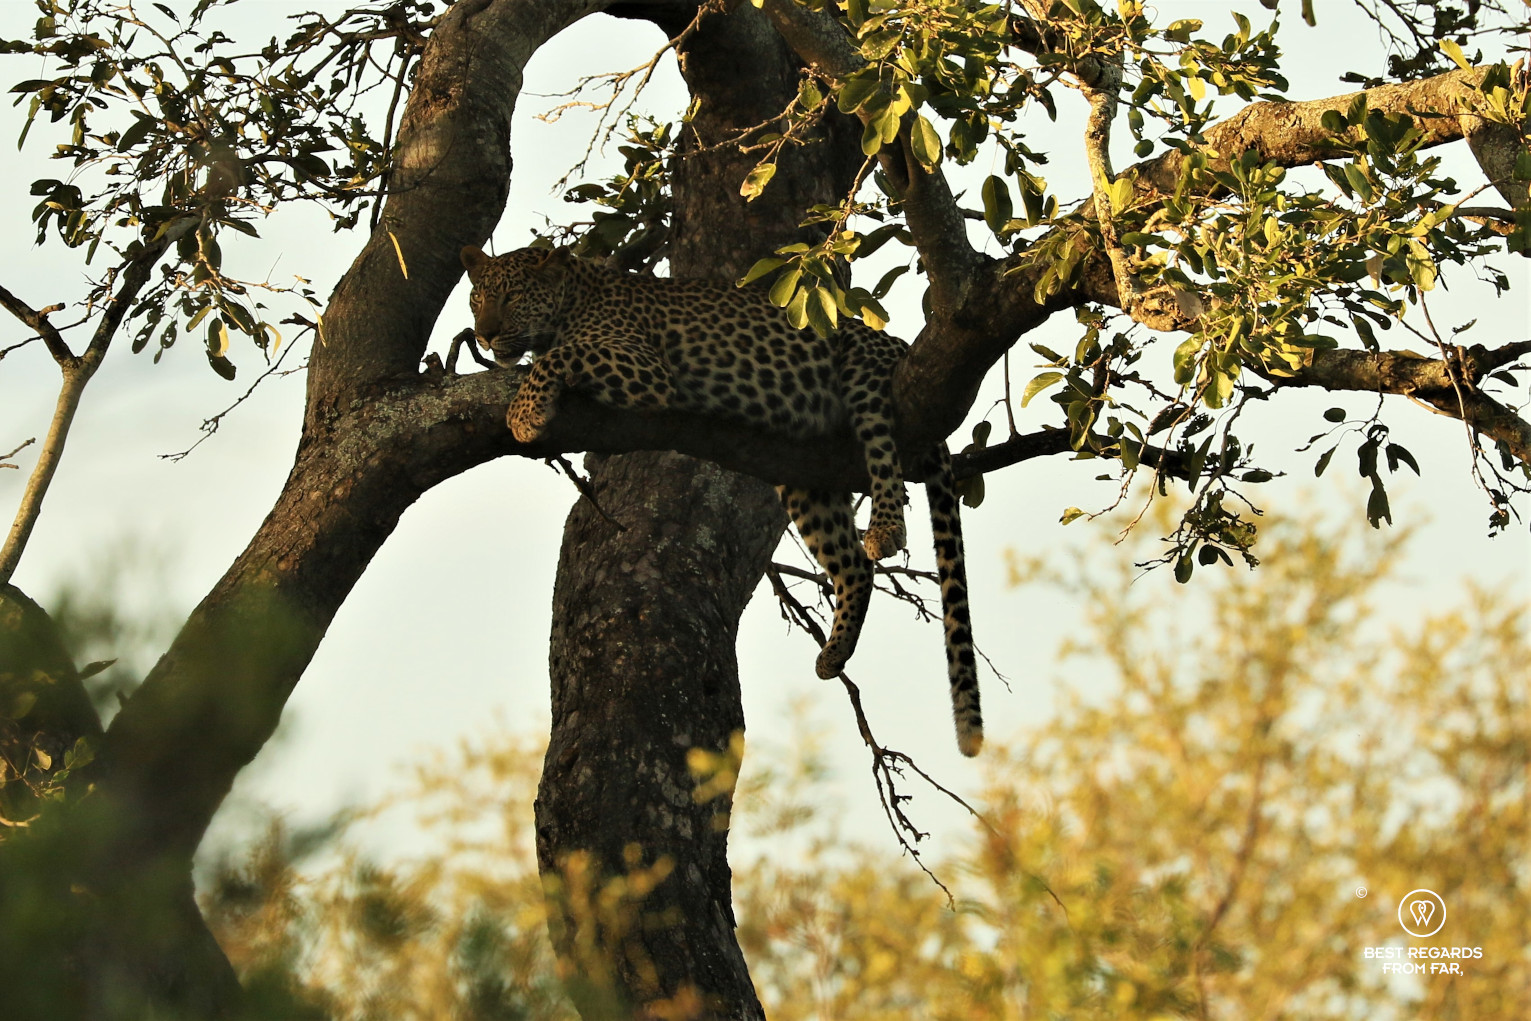 Female leopard resting on a branch with a full stomach after feeding